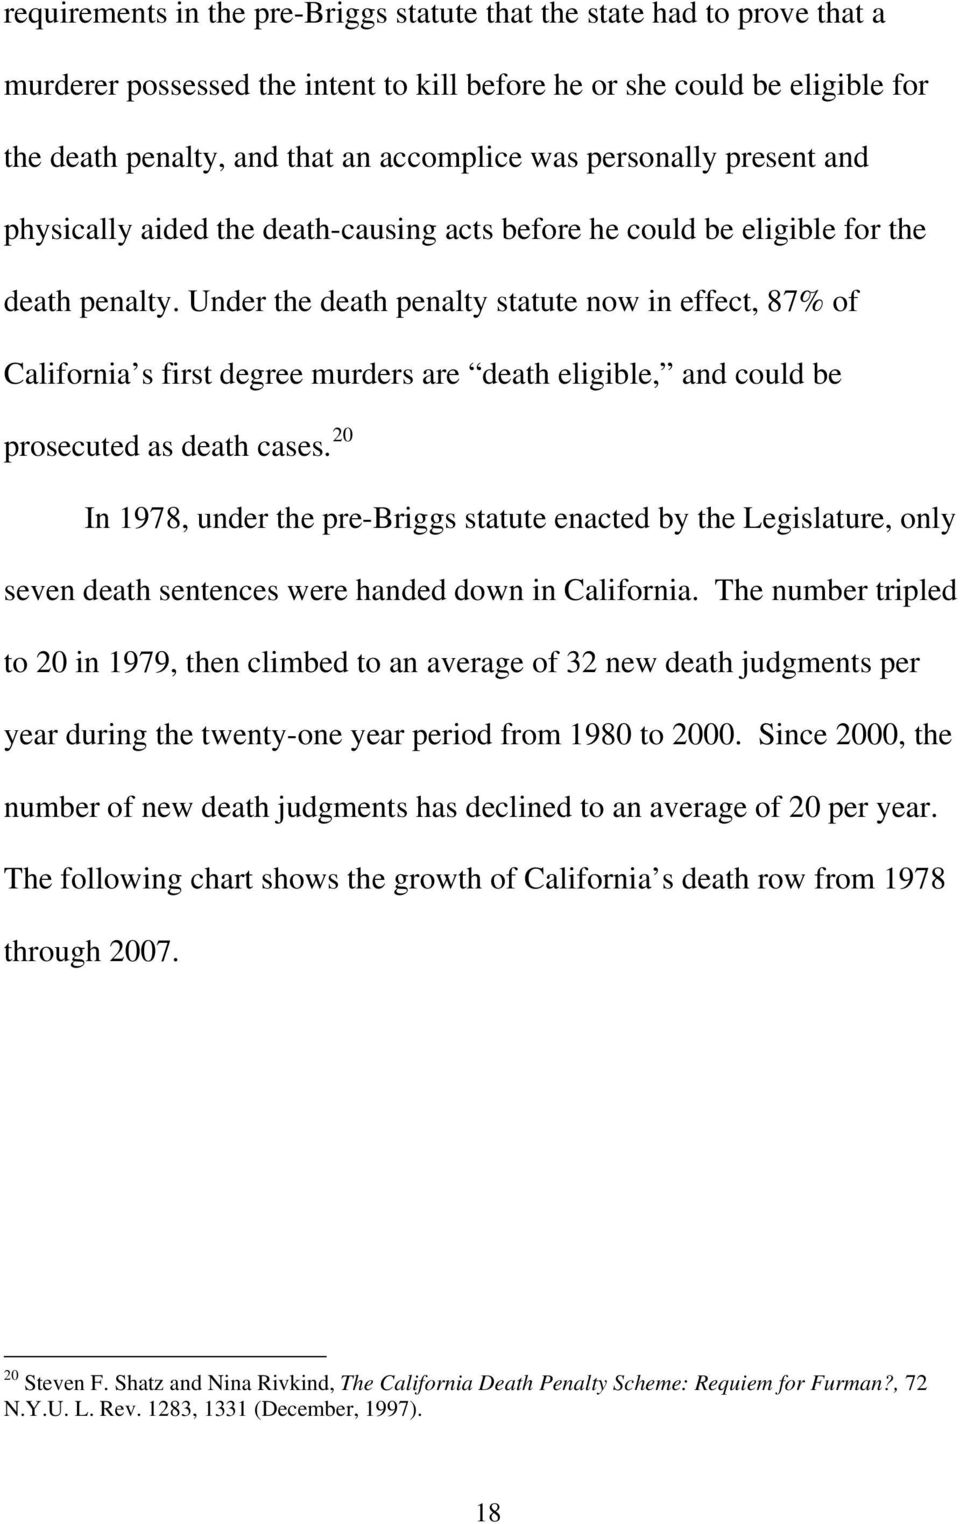 Under the death penalty statute now in effect, 87% of California s first degree murders are death eligible, and could be prosecuted as death cases.